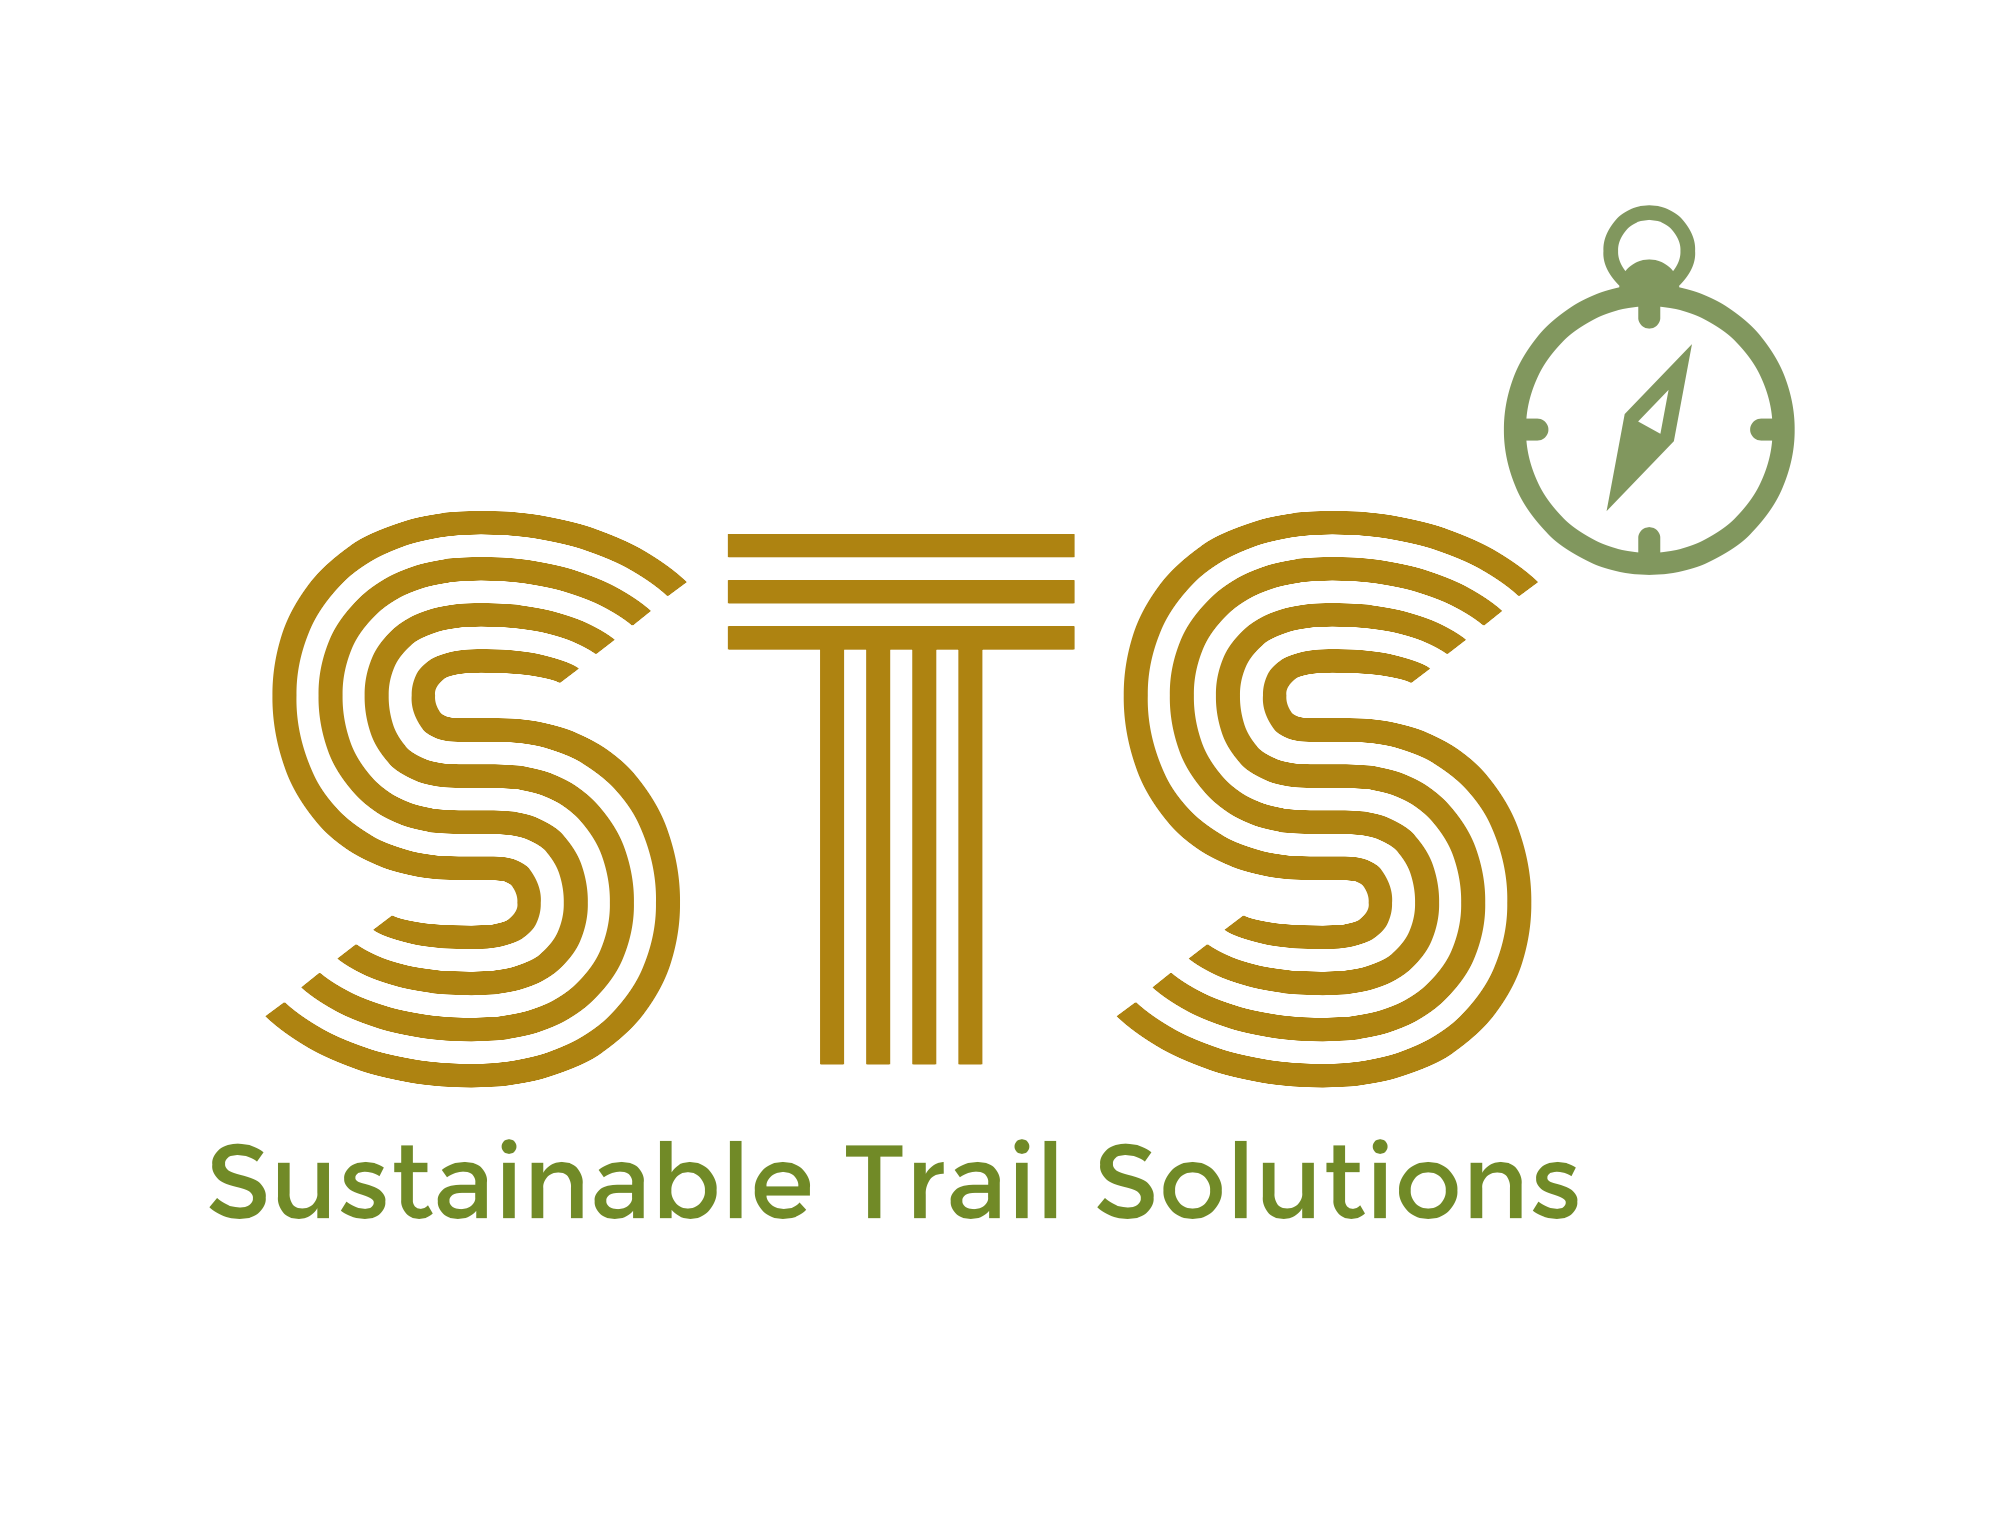 sts.logo.color.png